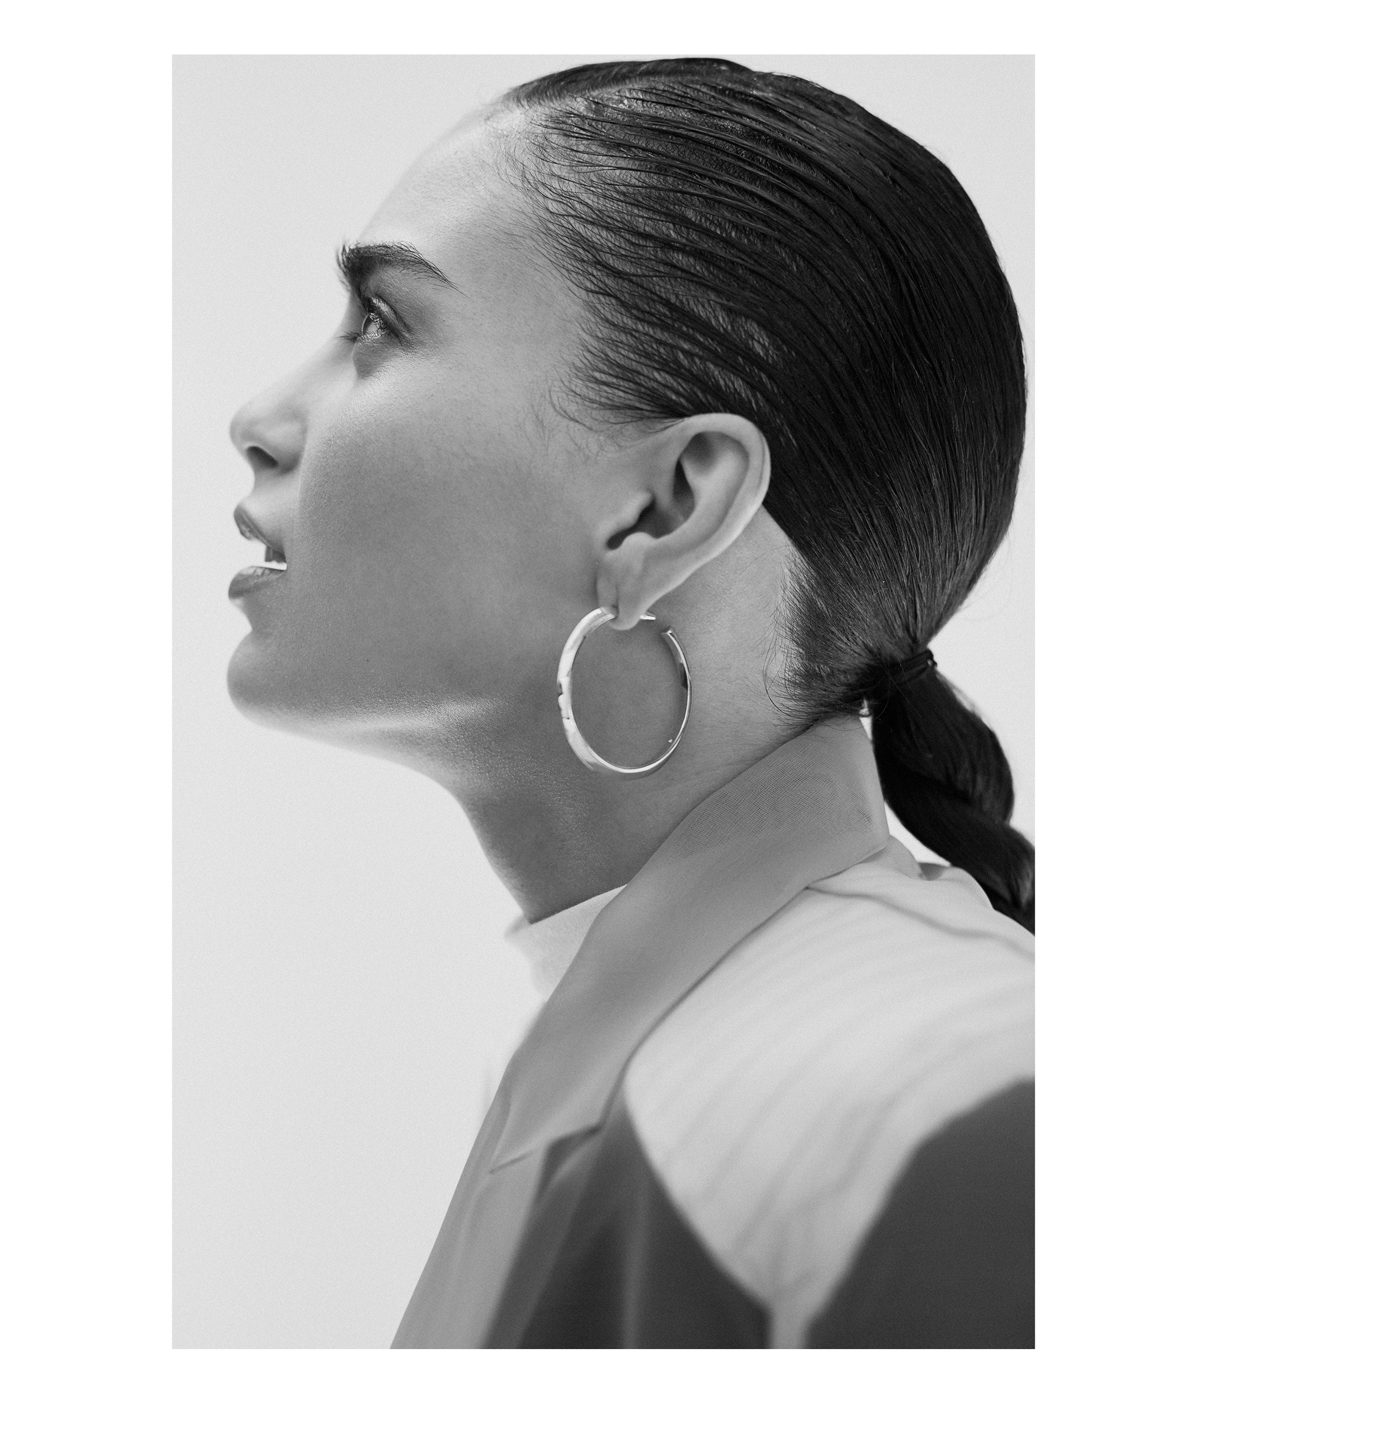 All clothing by Kimhēkim from Need Supply Co., Los Angeles. Earrings by Eddie Borgo from Assembly Los Angeles.